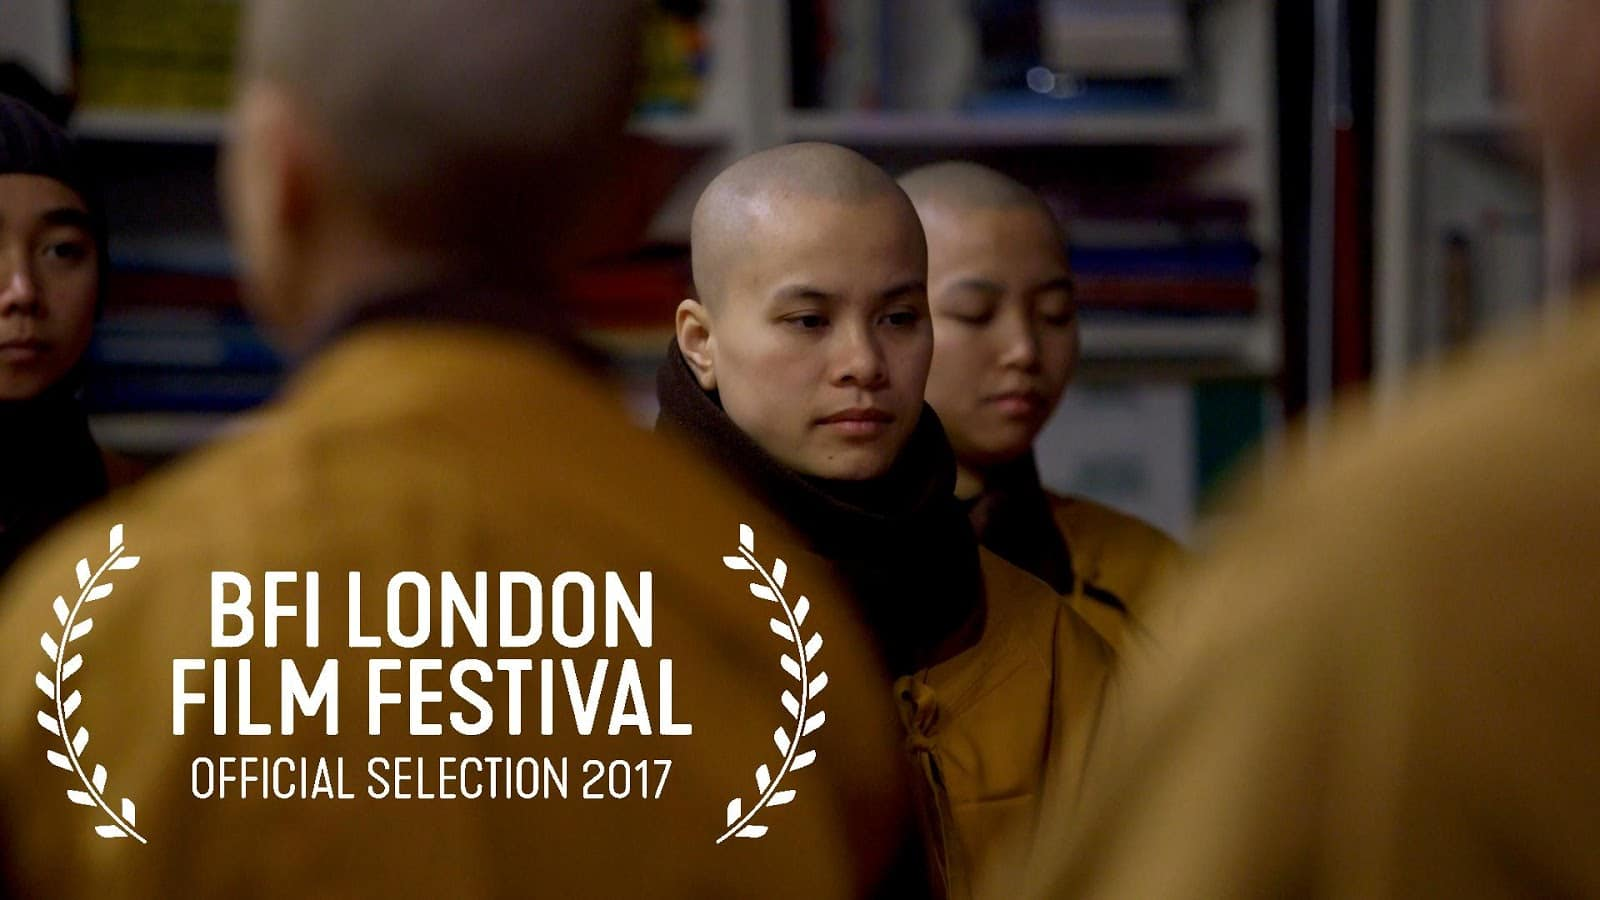 Walk With Me featured in BFI London Film Festival